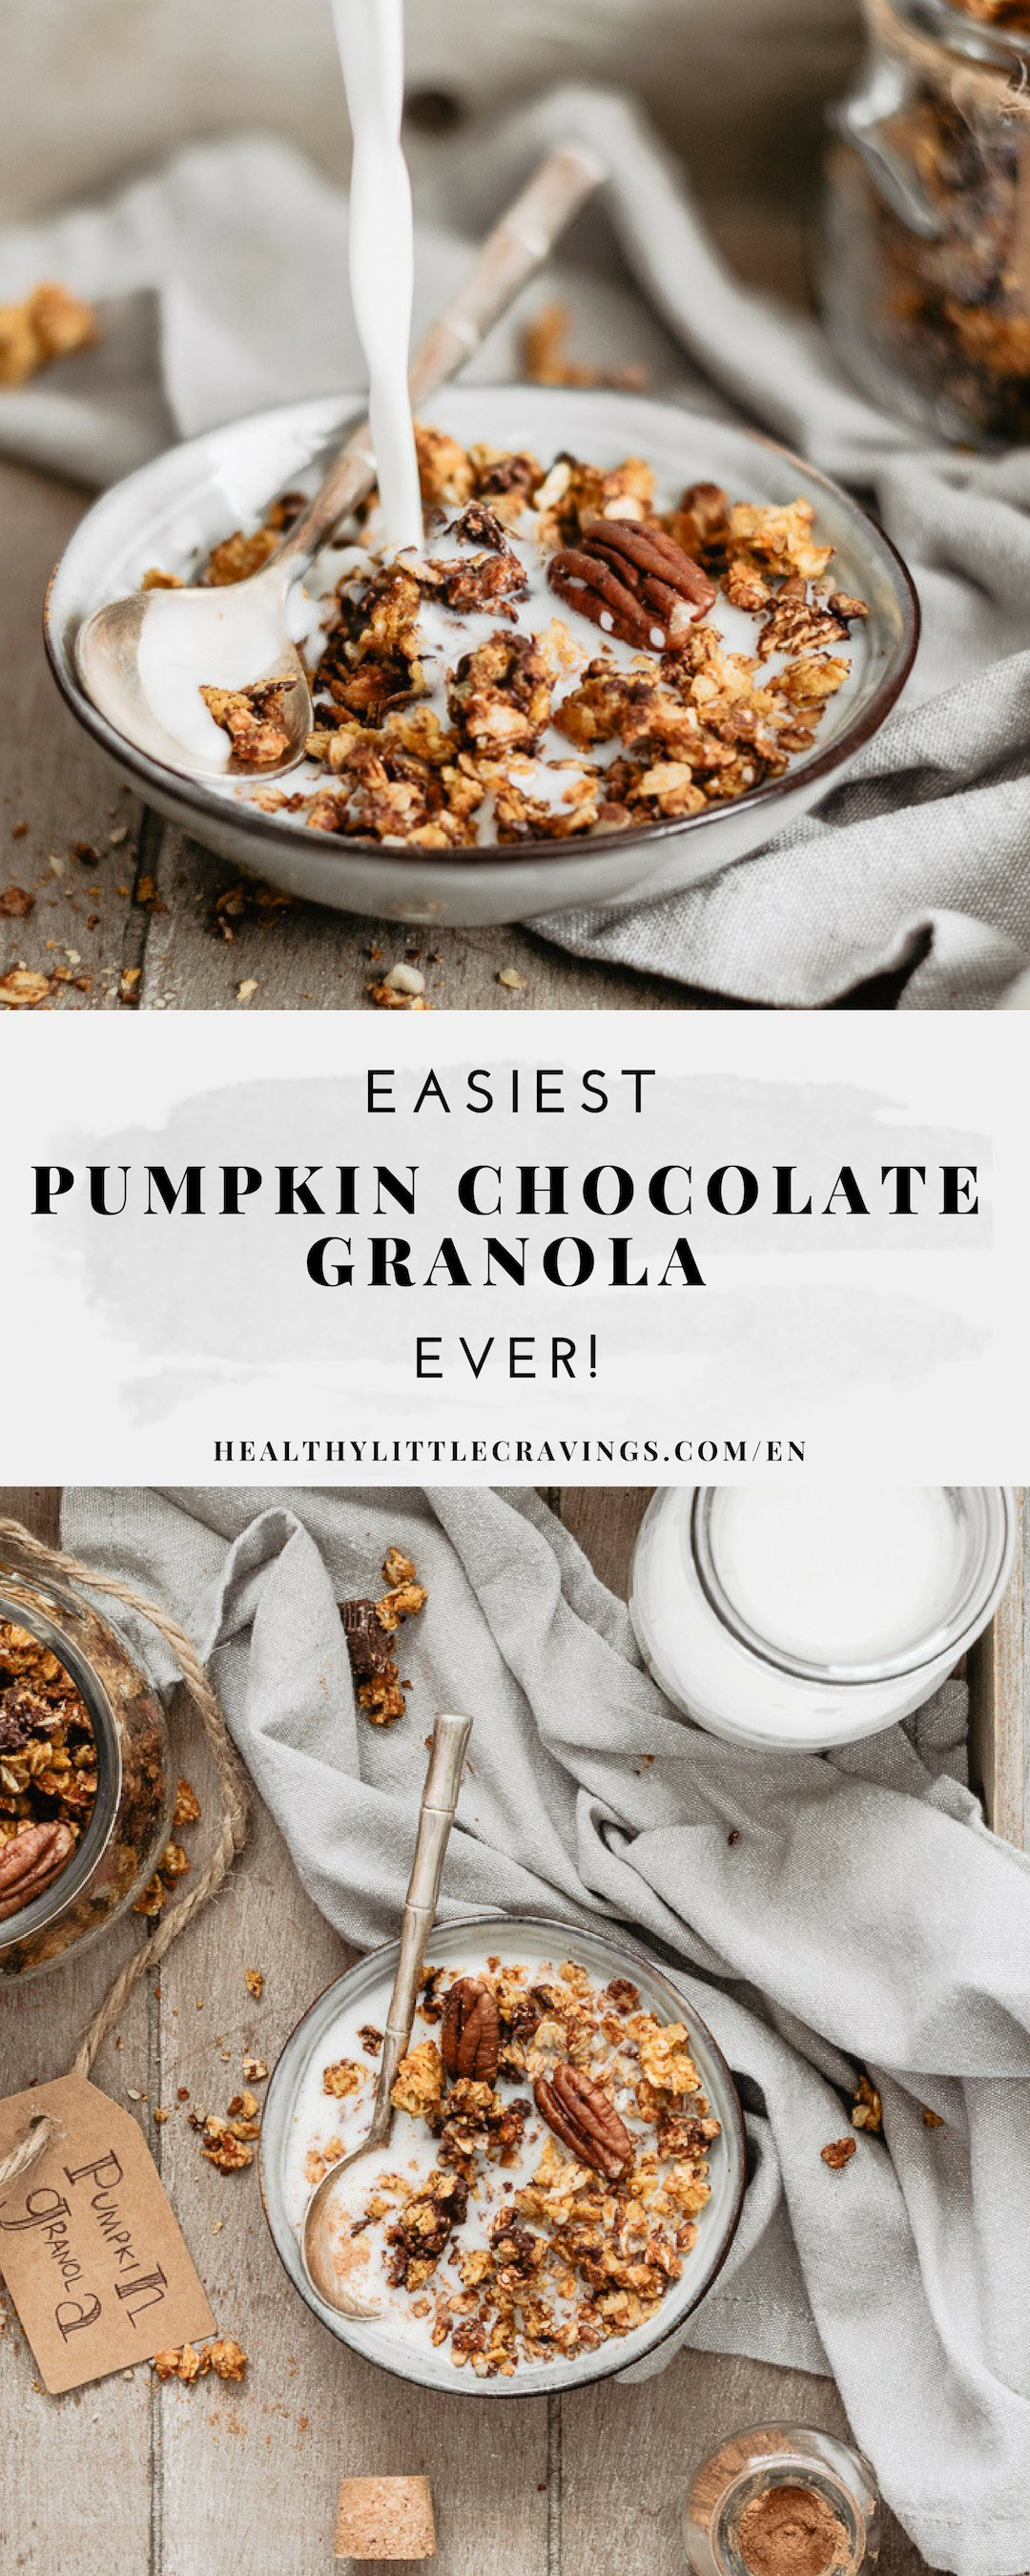 Easy and yummy pumpkin chocolate granola ever